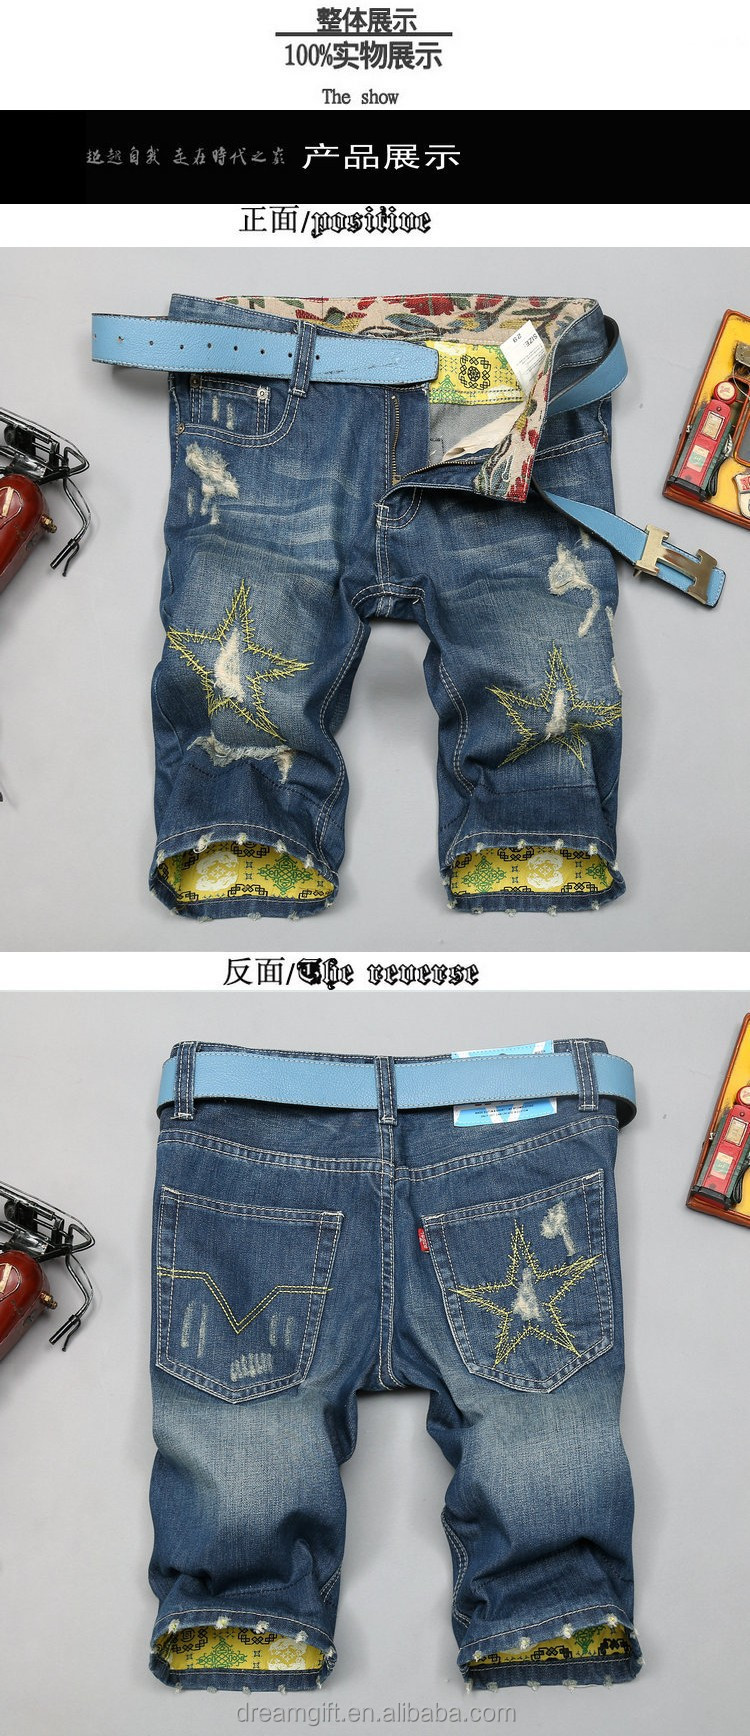 2015 Spot wholesale size 28-38 hole rotten supplement the fashionable men short jeans Denim Shorts Straight leg jeans (13142)